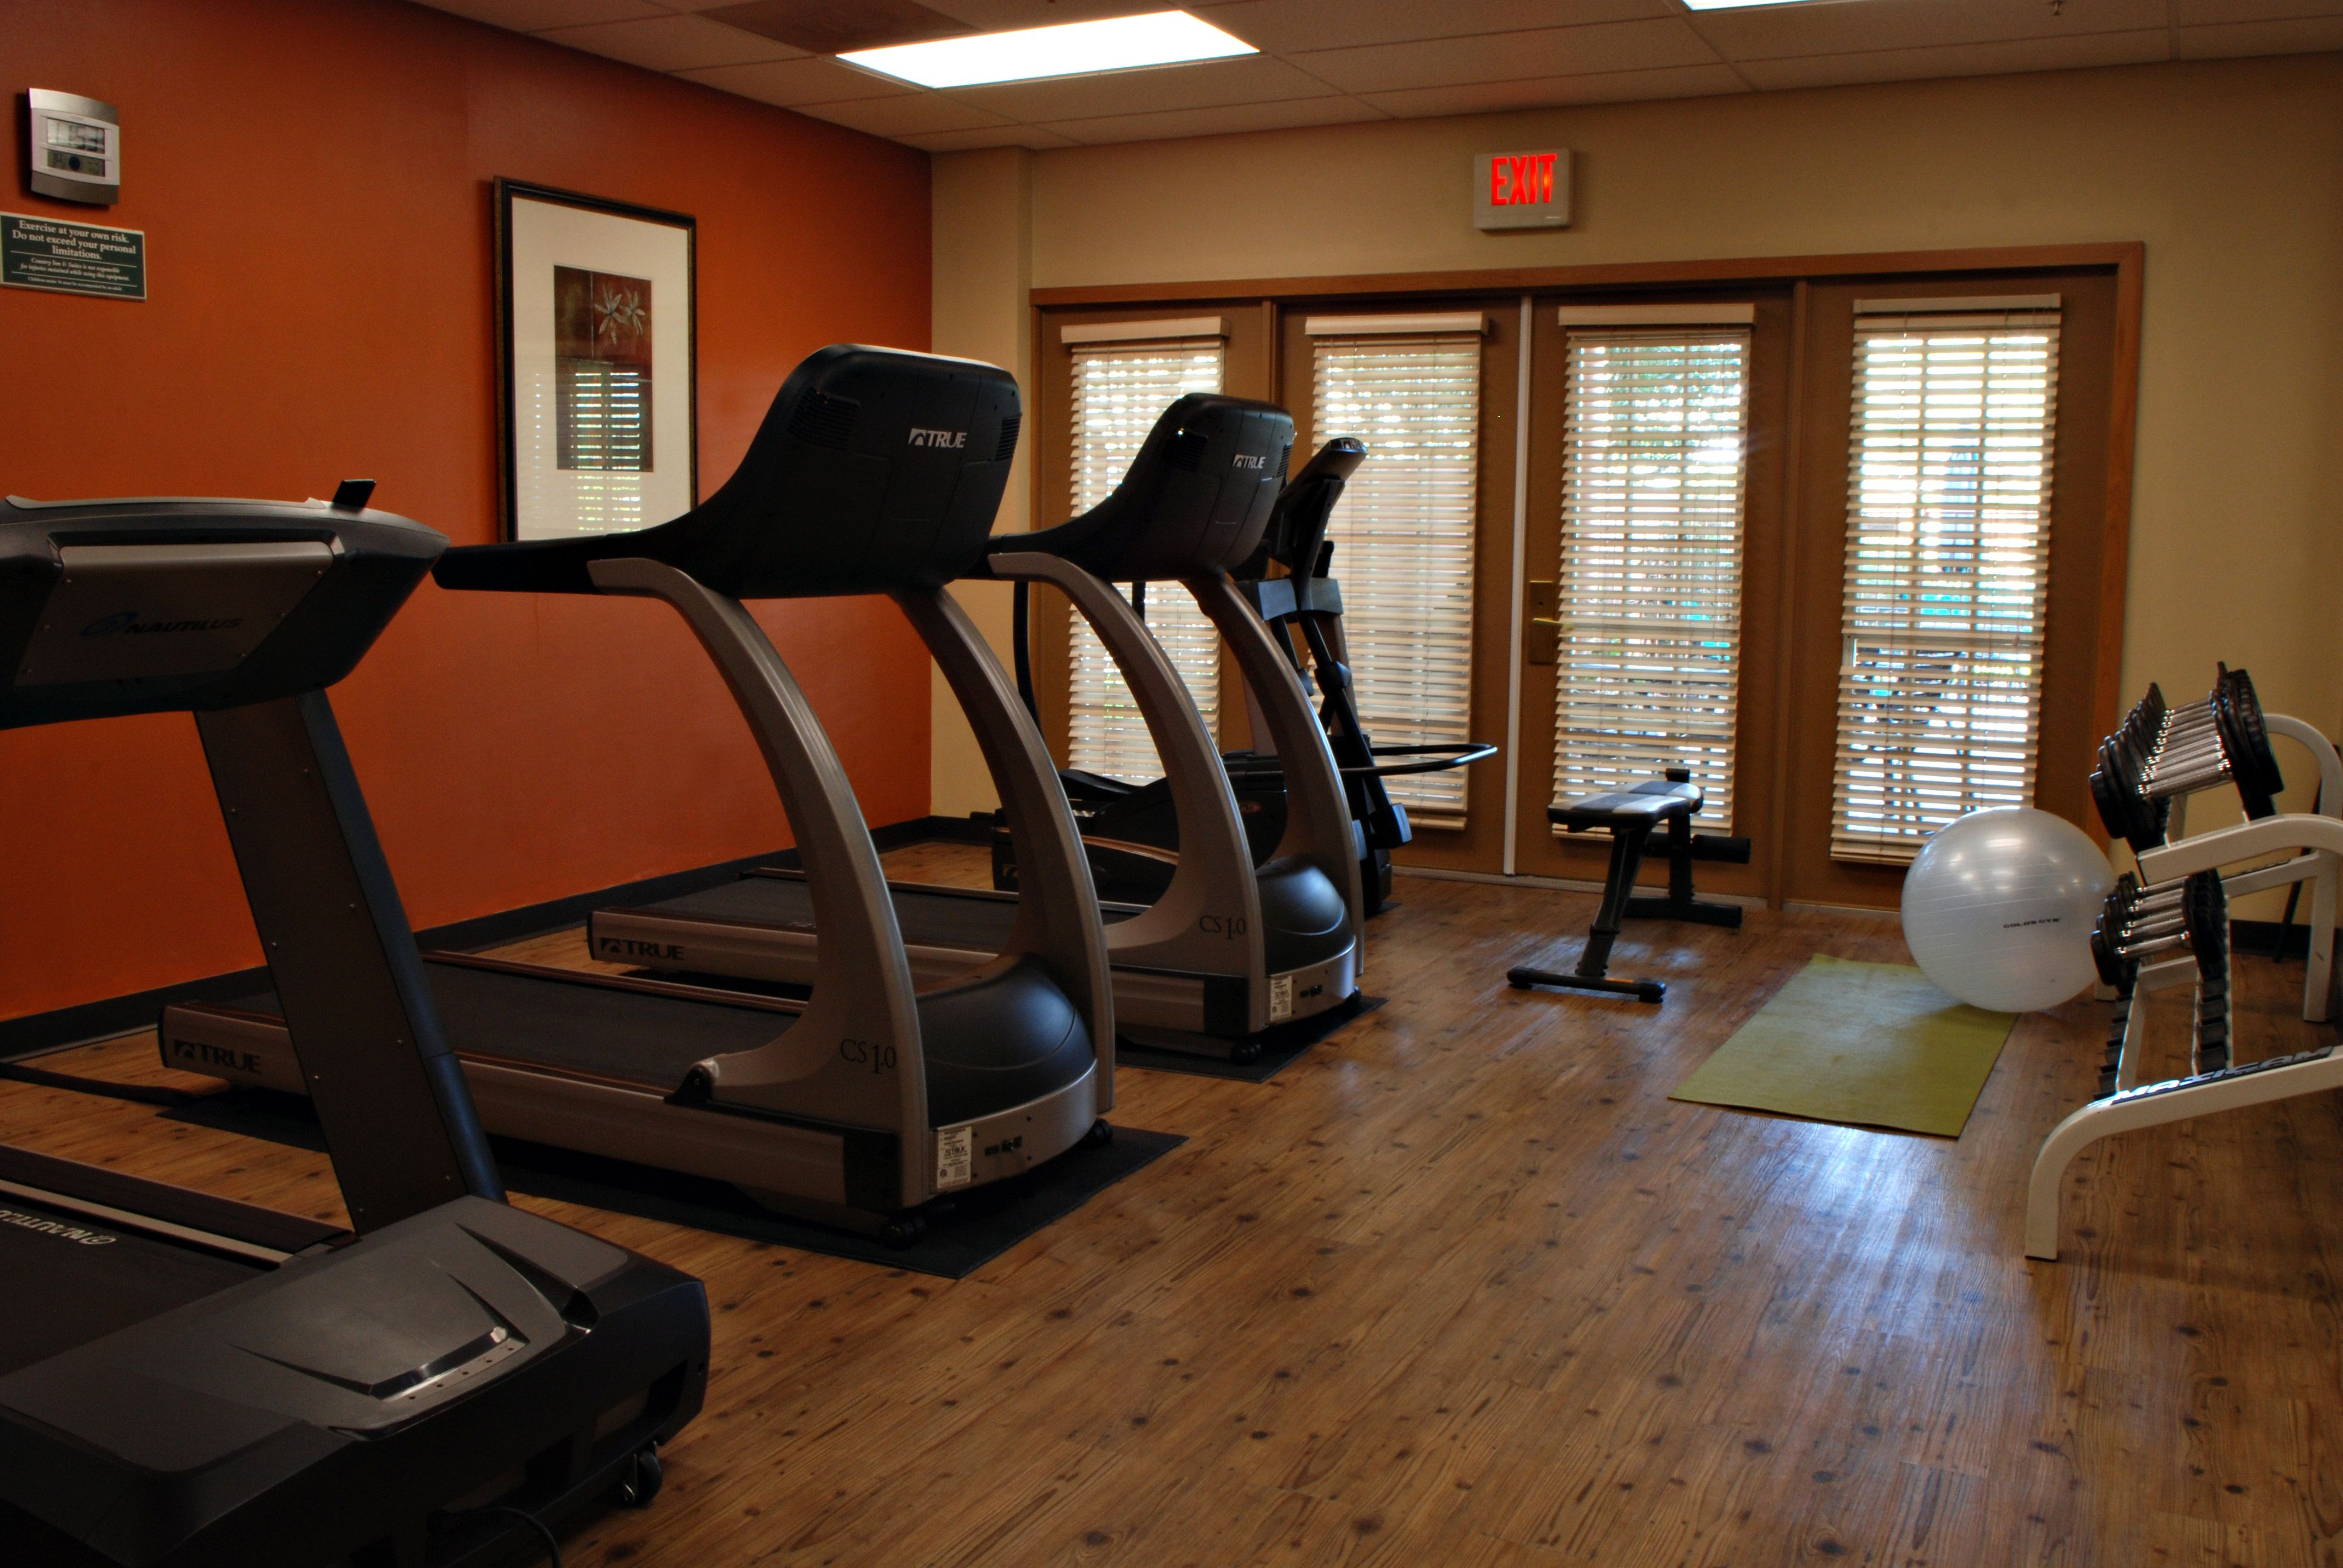 Gym Fitness Center In San Diego Mission Valley Chuze Fitness Gym Membership Mission Valley Gym Workouts